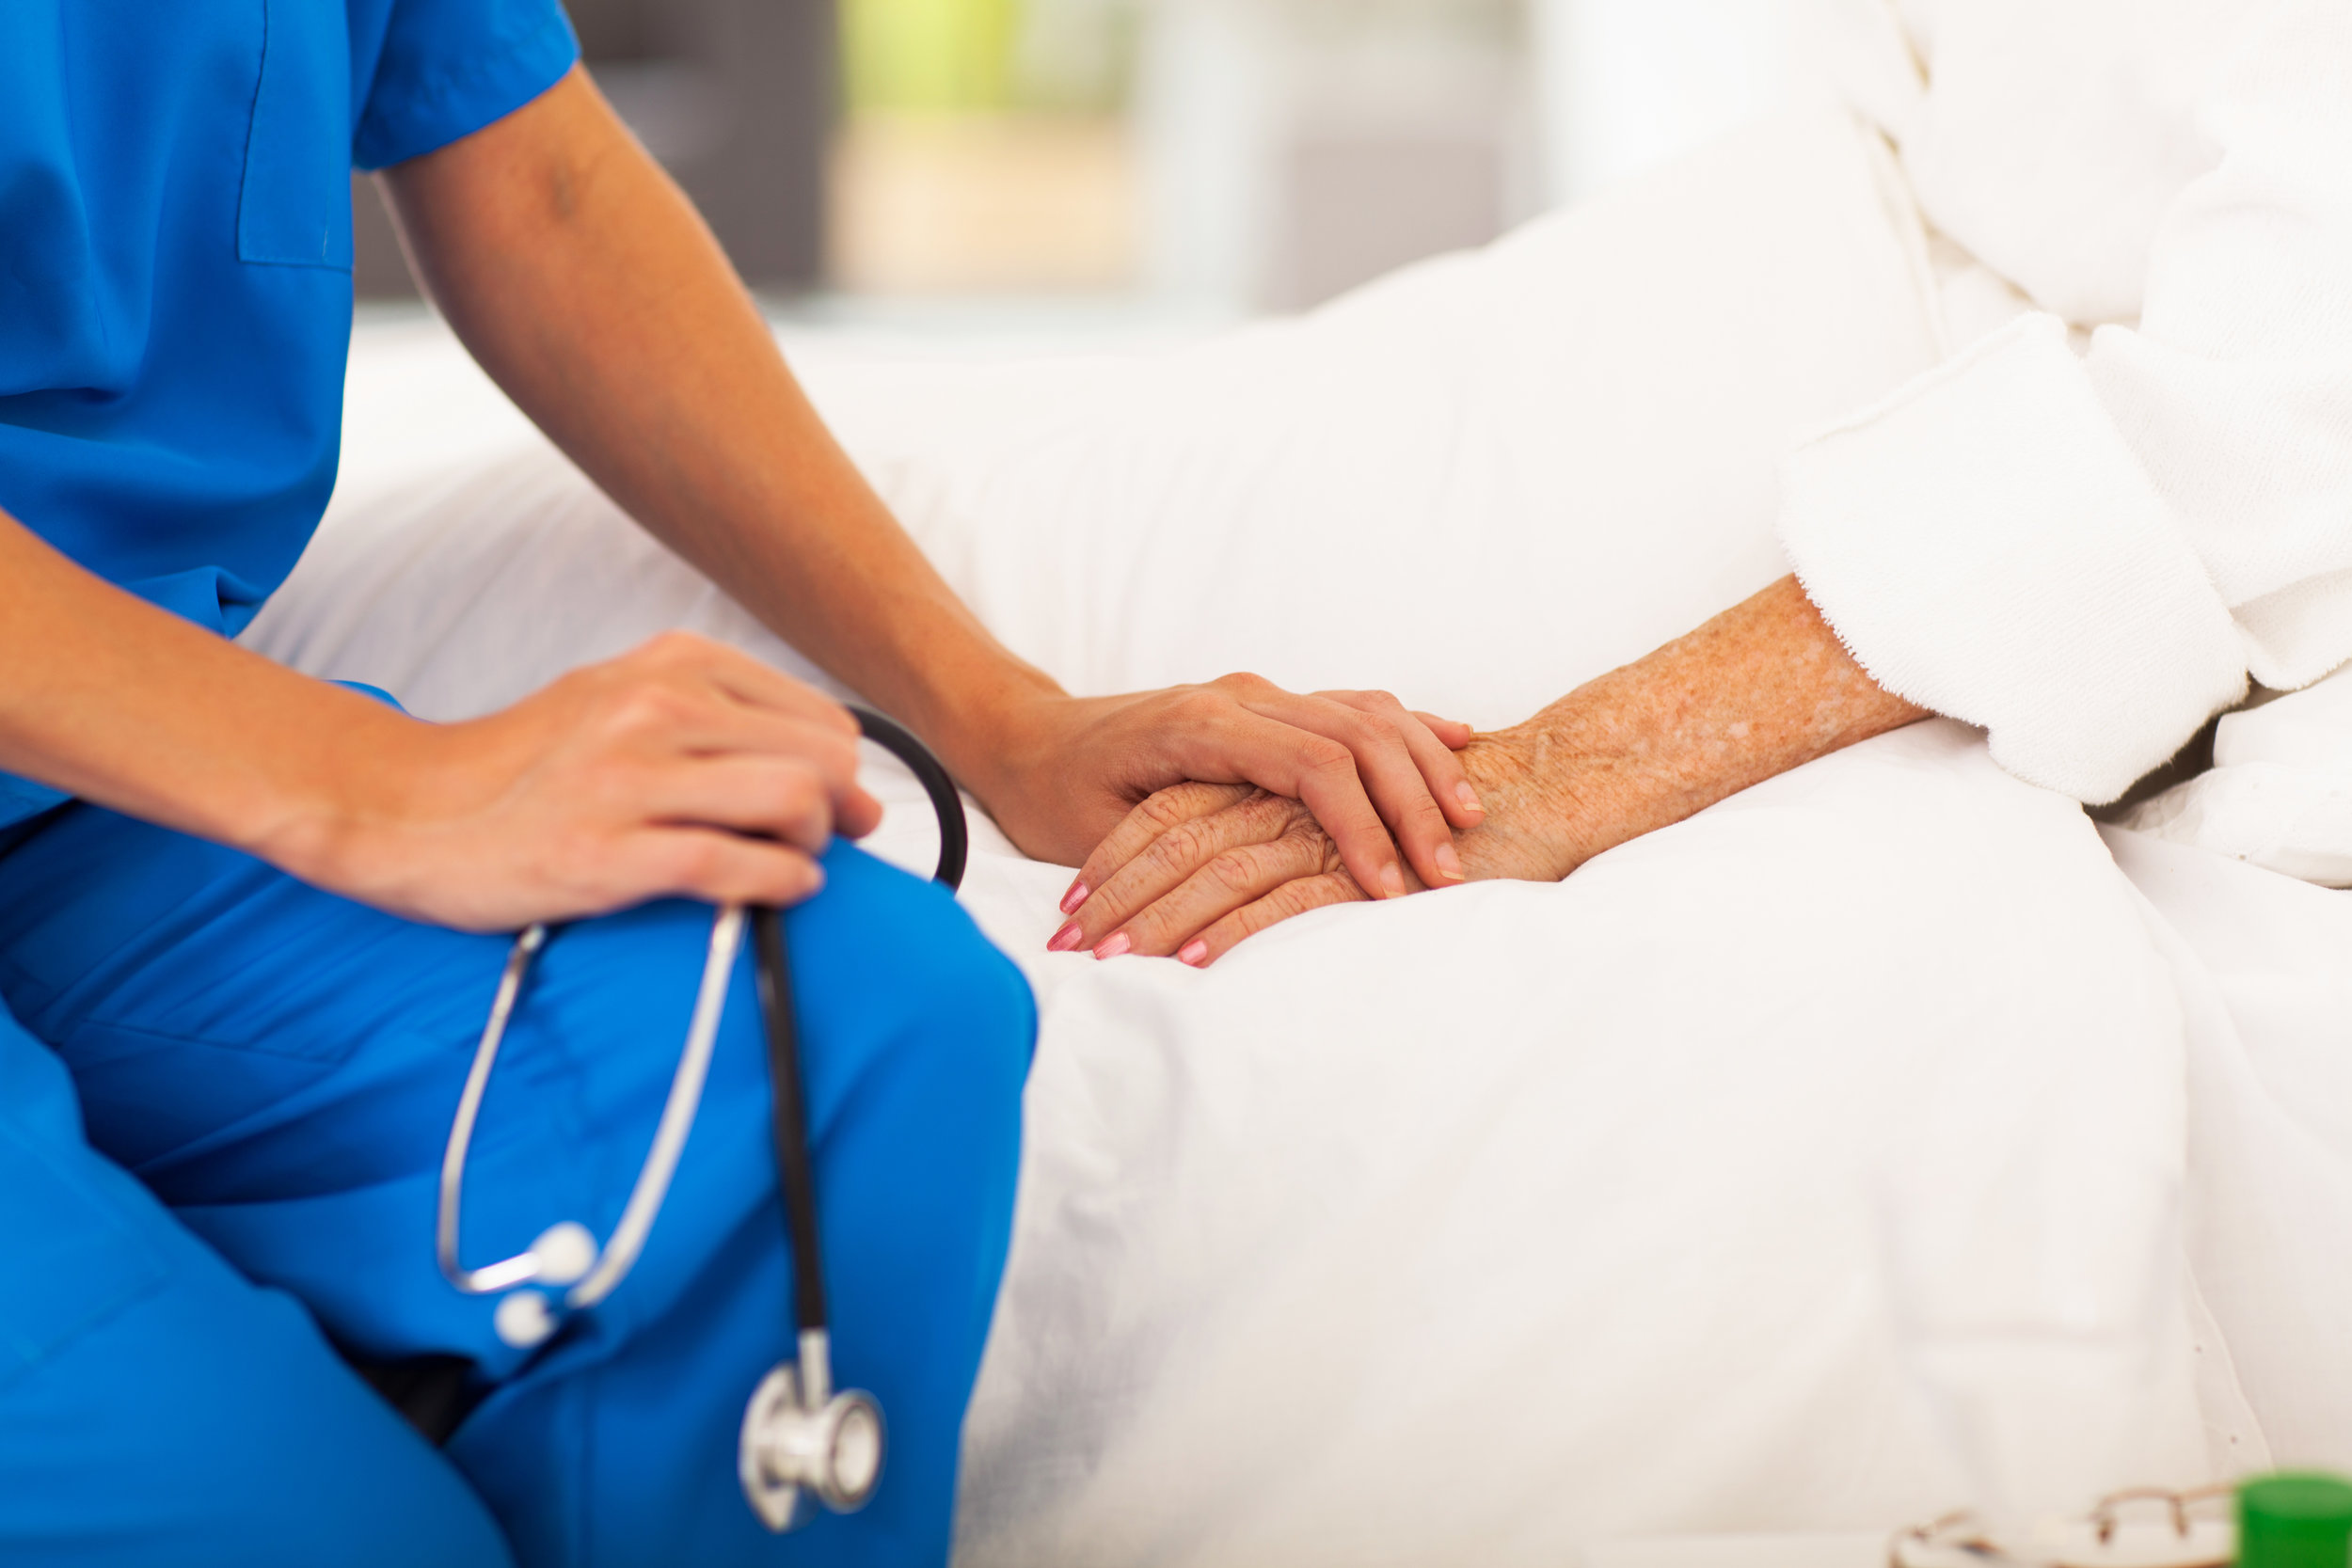 Nurse holding the hand of a patient in a skilled nursing facility